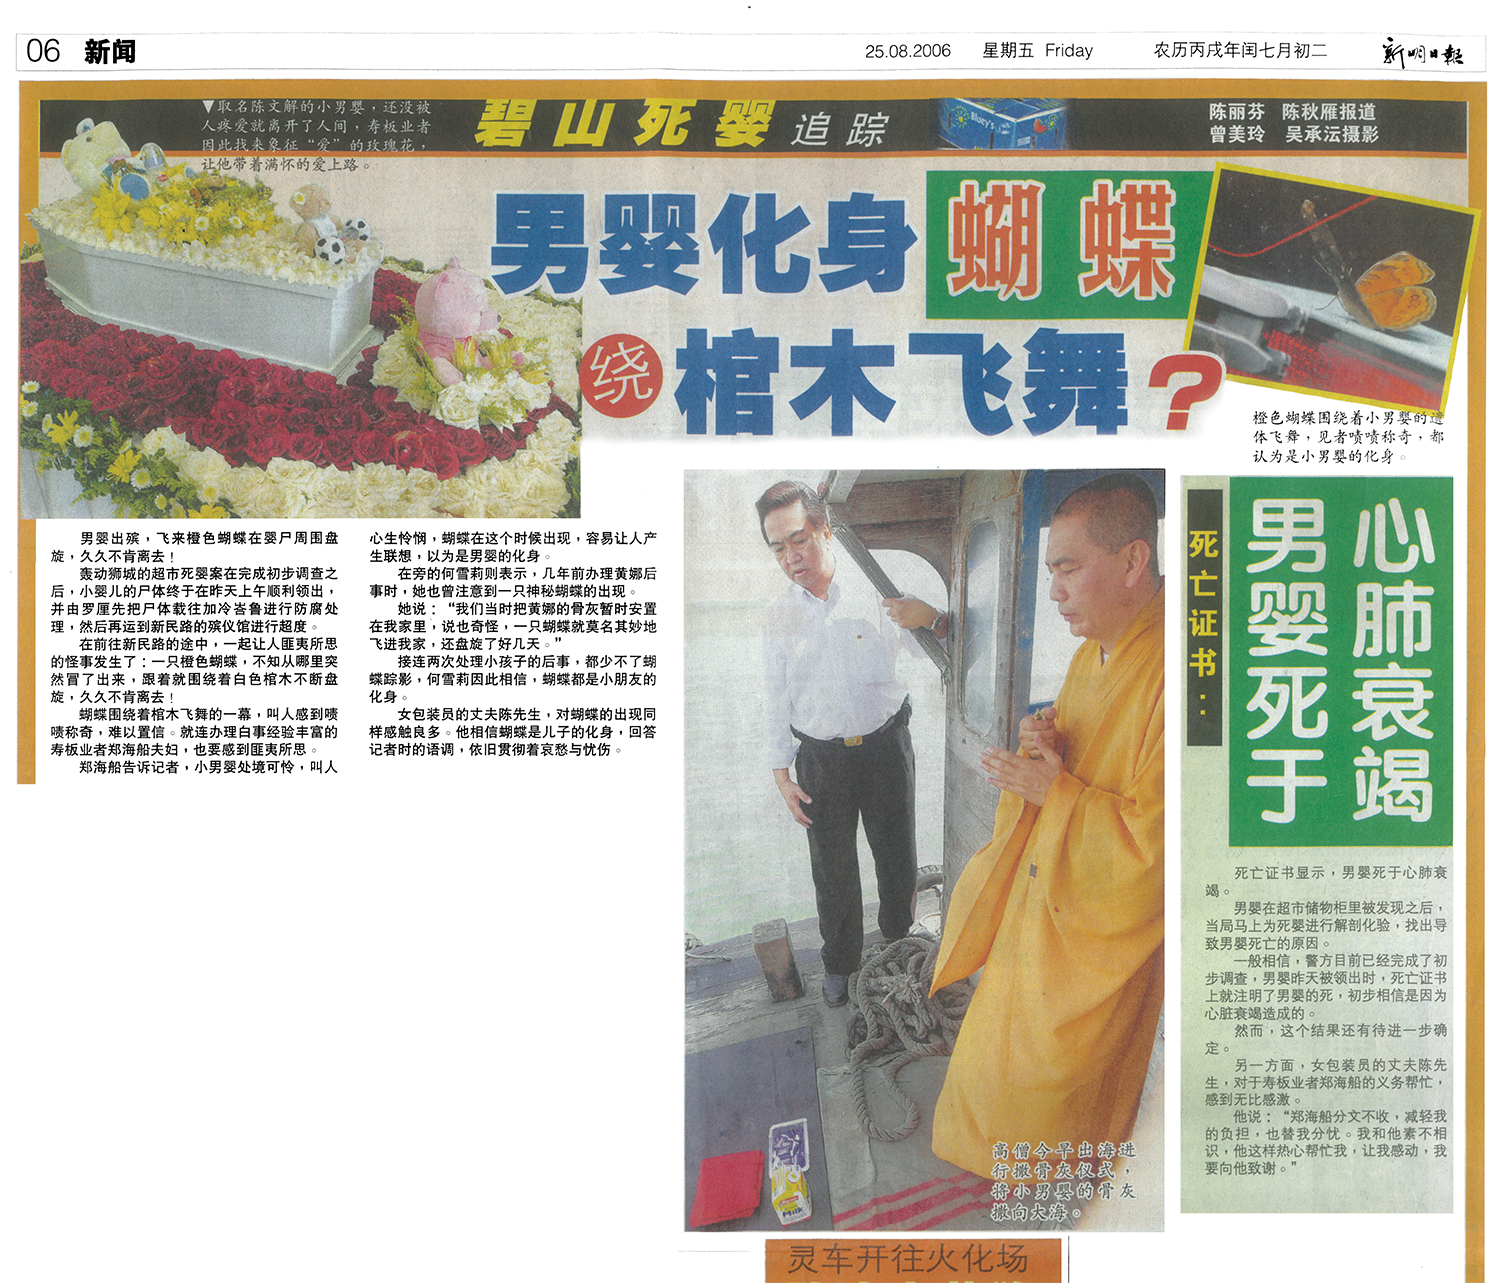 Article - 20060825